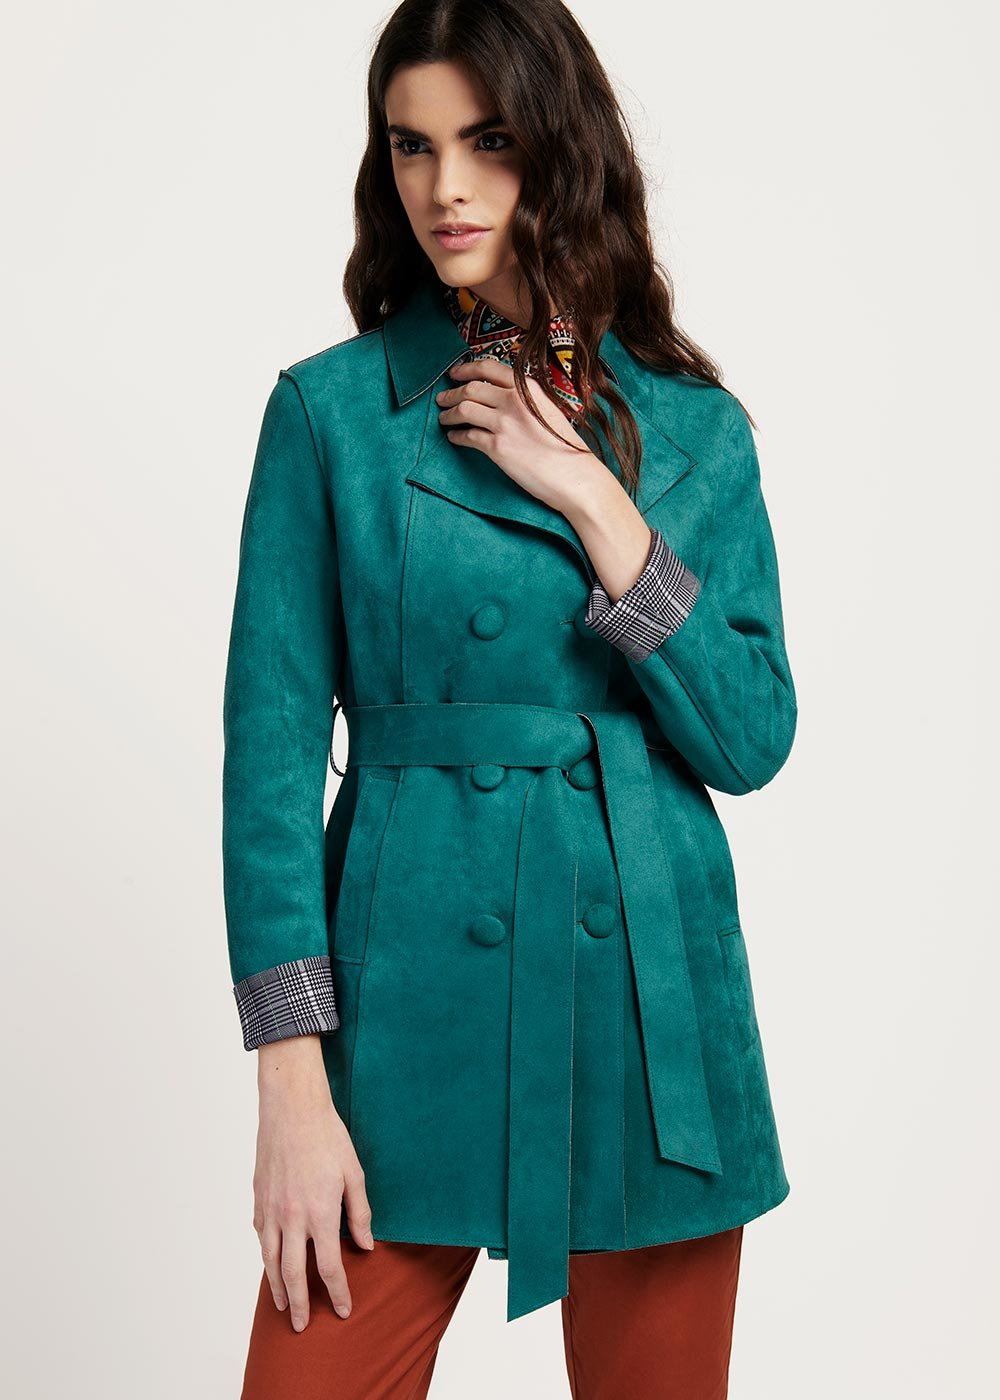 Twil double-breasted mint green trench coat - Menta - Woman